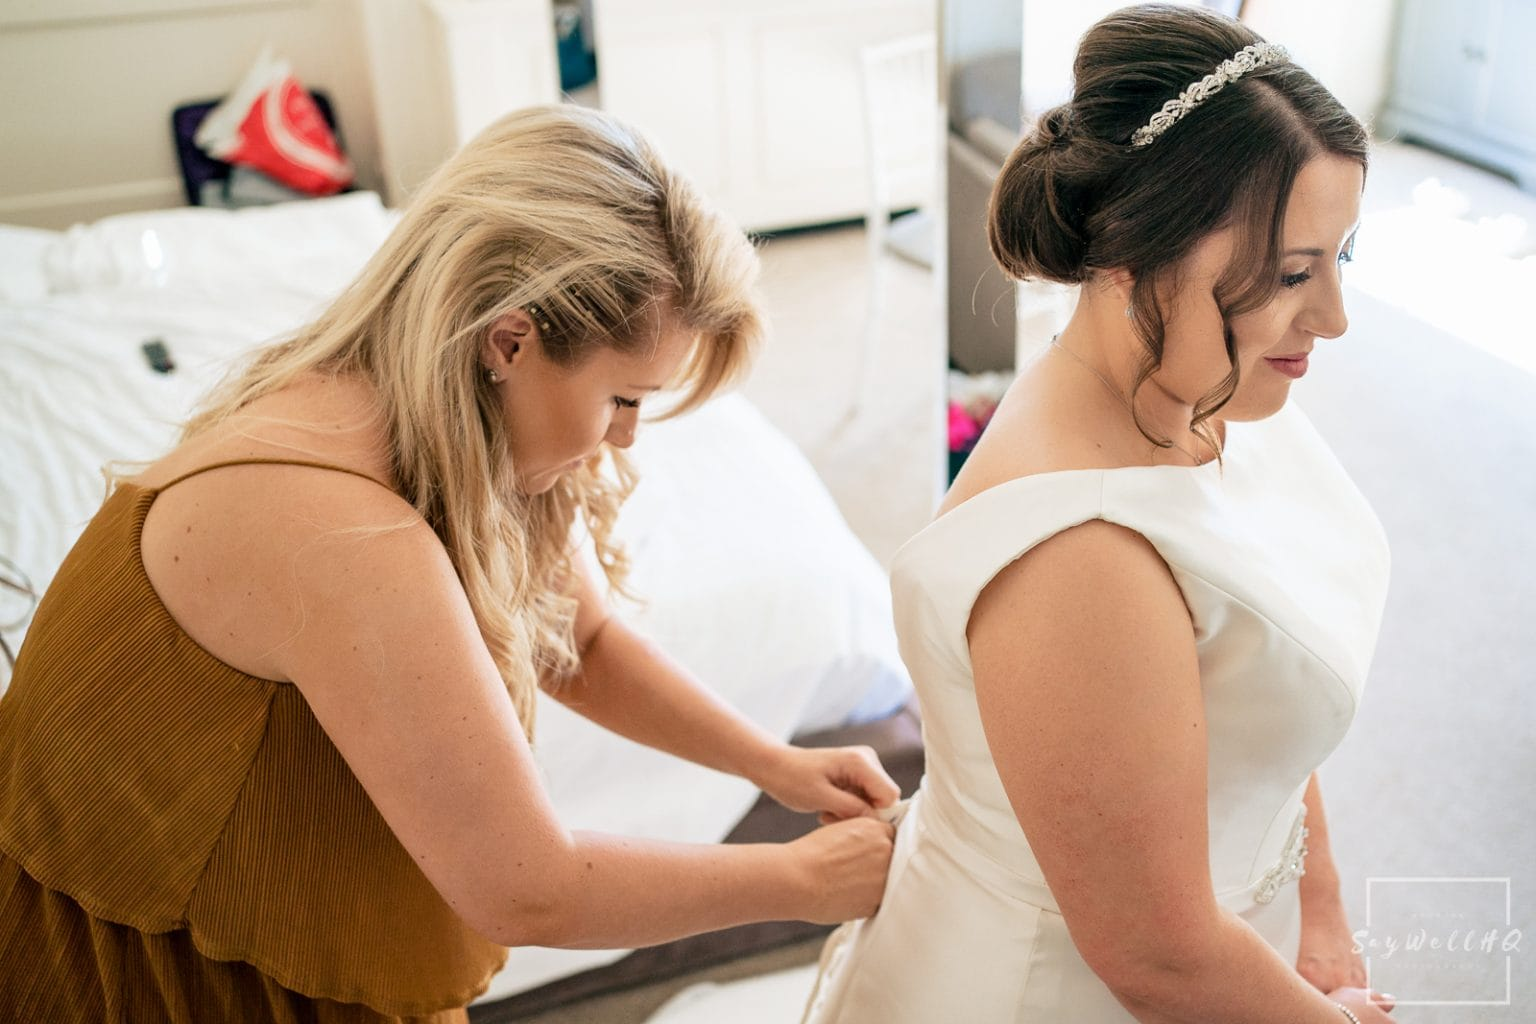 Winstanley House Wedding Photography - Bride gets into her wedding dress before the wedding